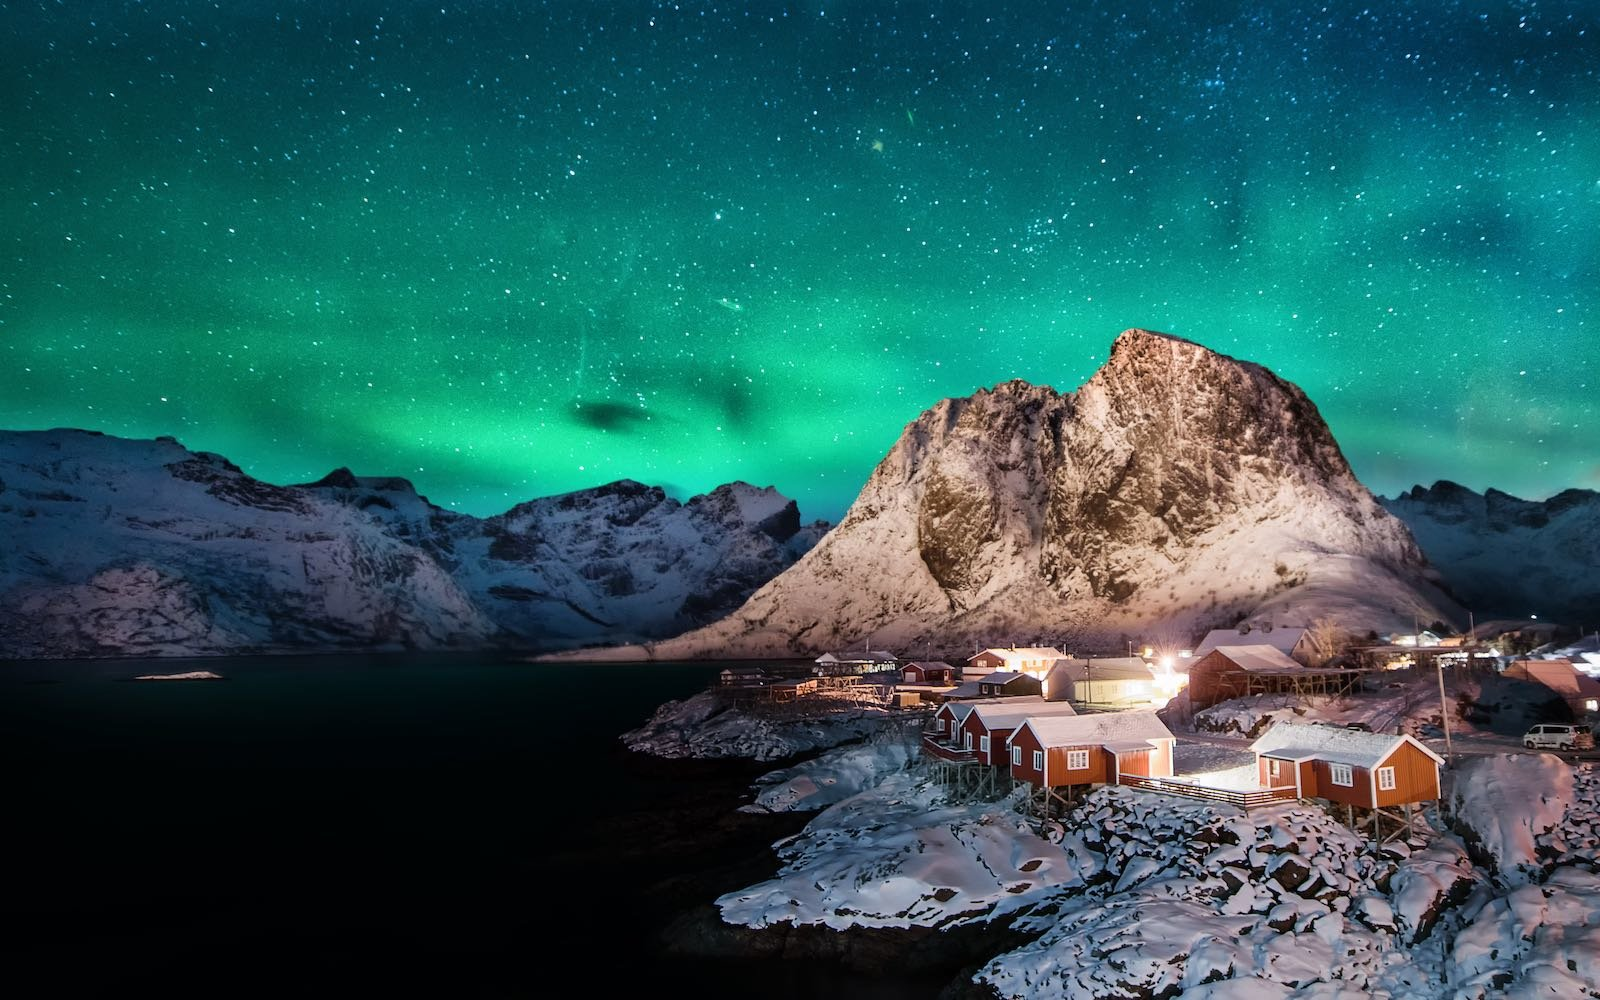 Aurora Borealis Northern Lights Lofoten Islands Norway